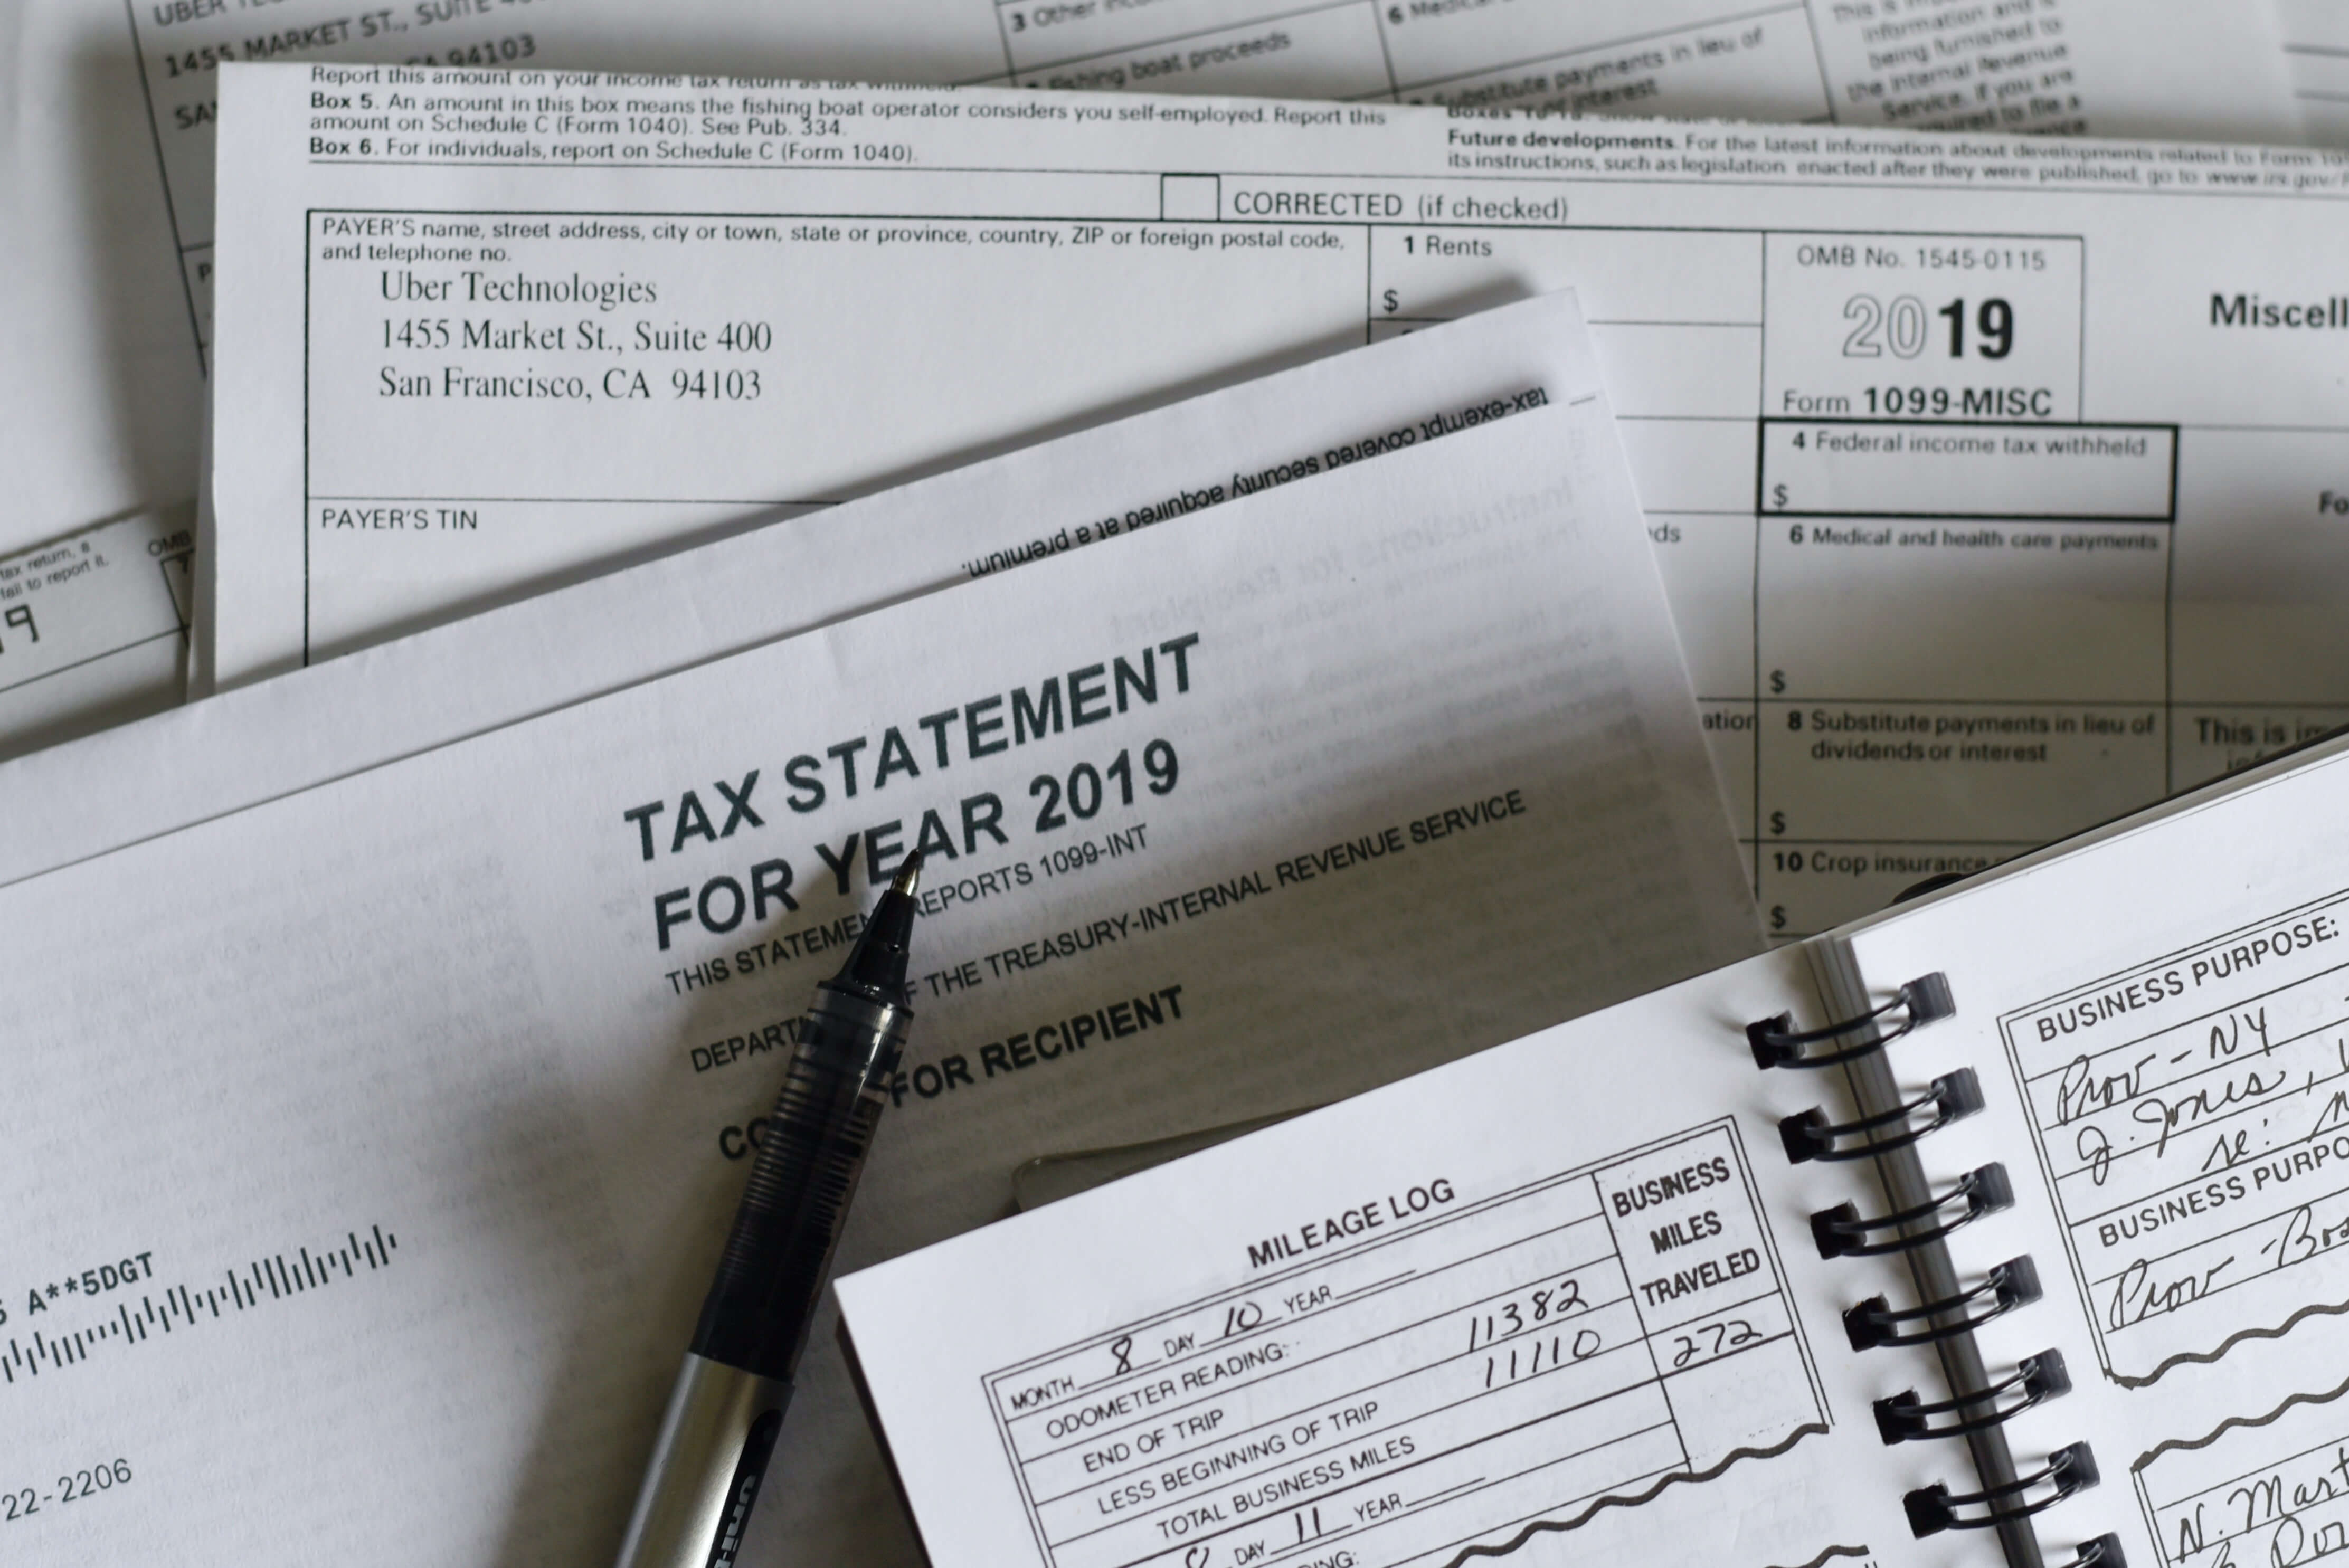 Cancelling council tax when moving house